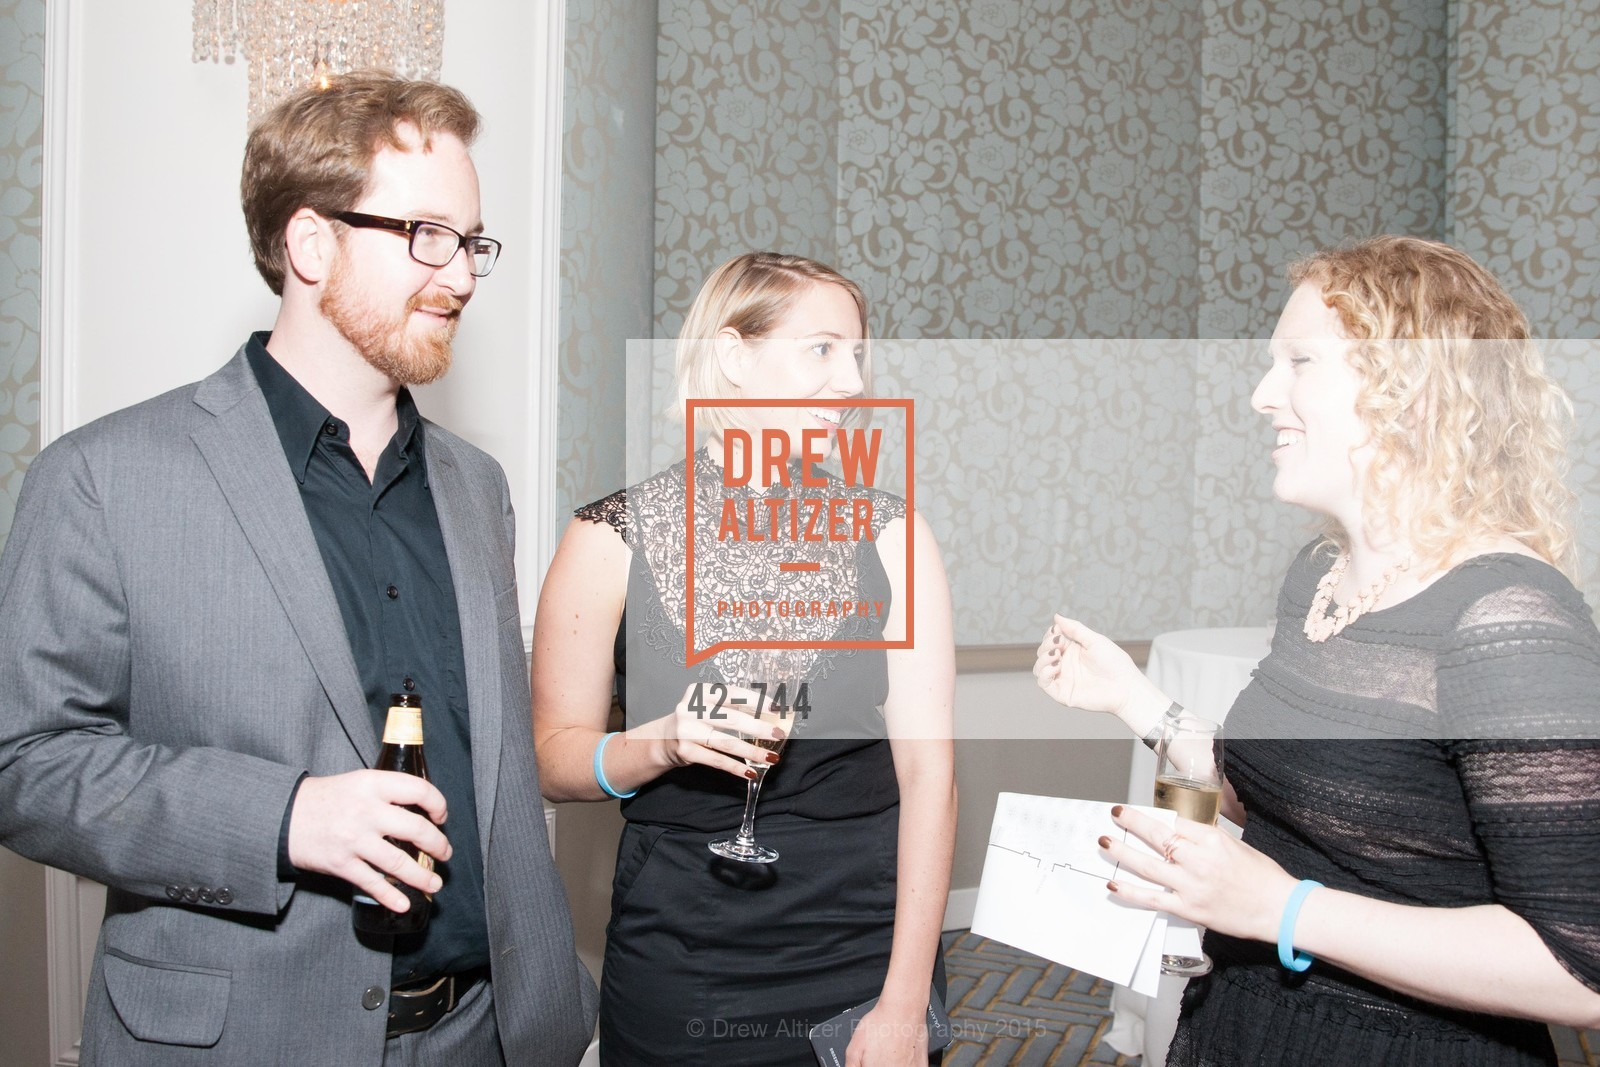 John Love, Emily Hancock, Zoey Fox, Celebration of Launch of SHYP in Los Angeles, US, May 21st, 2015,Drew Altizer, Drew Altizer Photography, full-service agency, private events, San Francisco photographer, photographer california